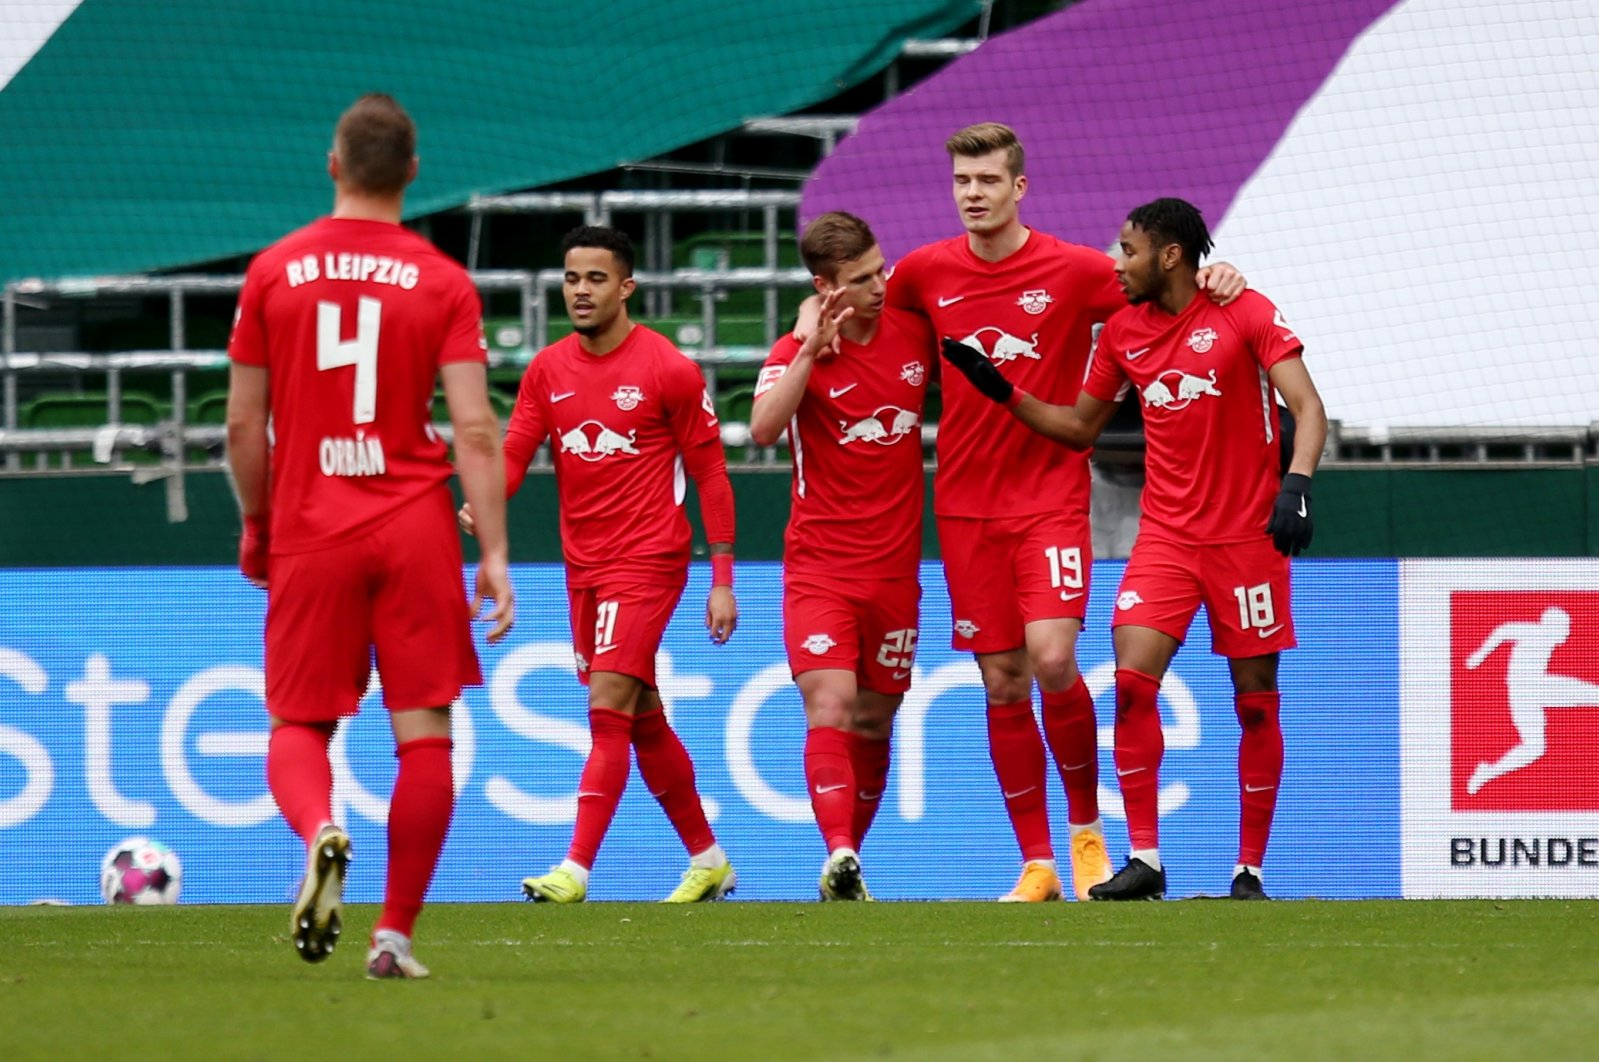 RB Leipzig's Alexander Sorloth (2ndR) celebrates scoring their second goal with teammates during the Bundesliga match against Werder Bremen at Weser-Stadion, Bremen, Germany, April 10, 2021. (Cathrin Mueller/DFL/Pool via Reuters)